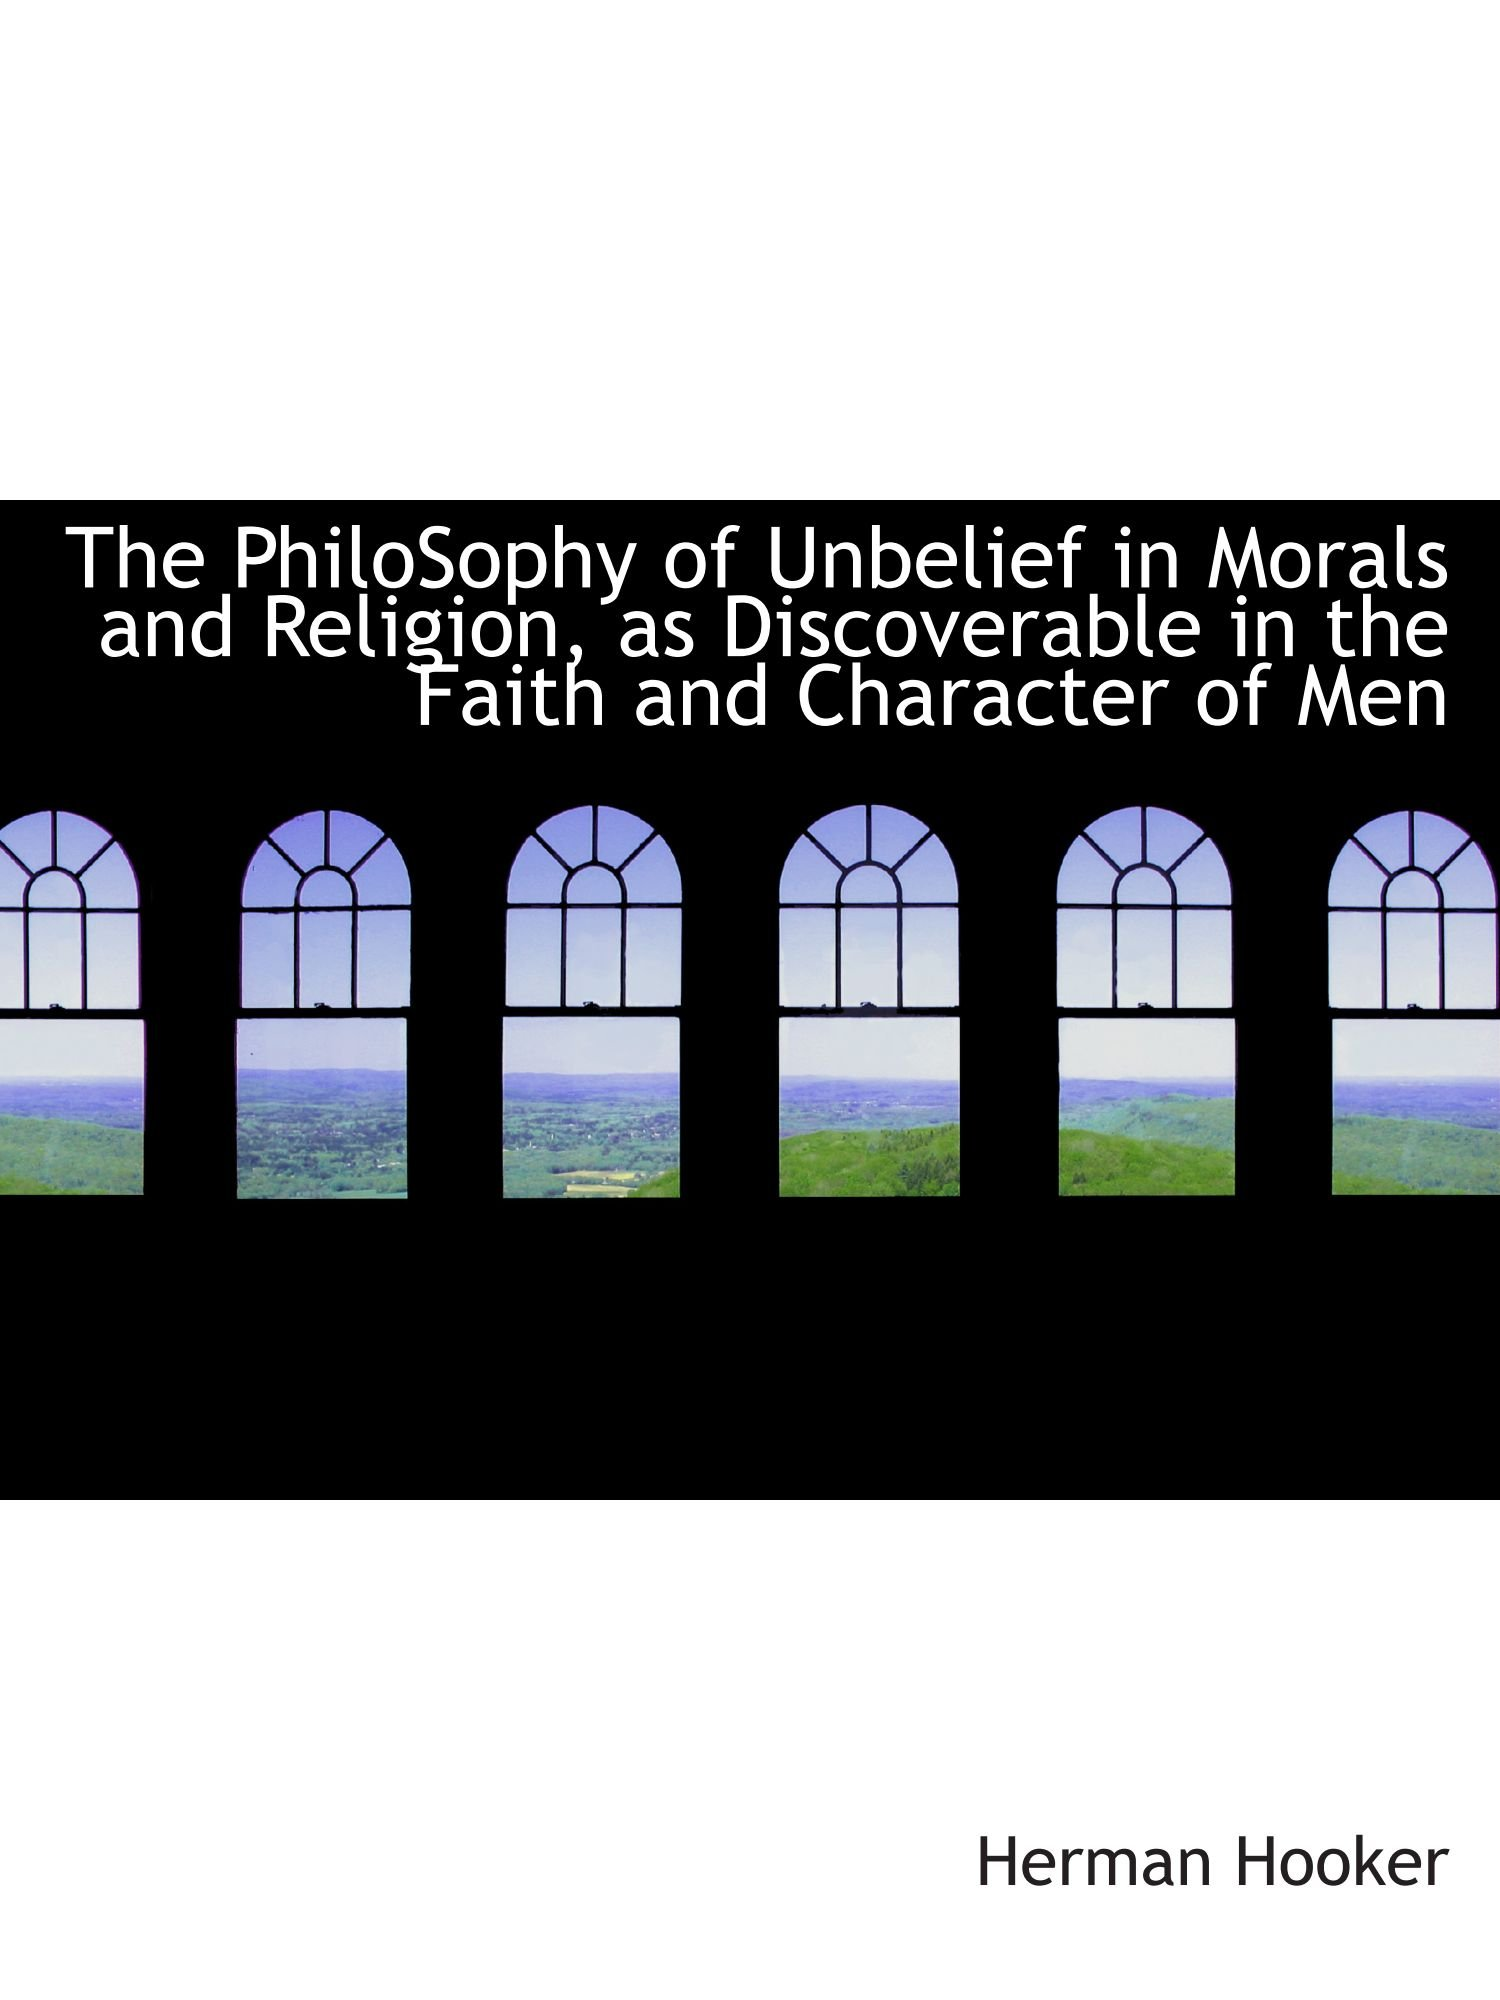 The PhiloSophy of Unbelief in Morals and Religion, as Discoverable in the Faith and Character of Men ebook